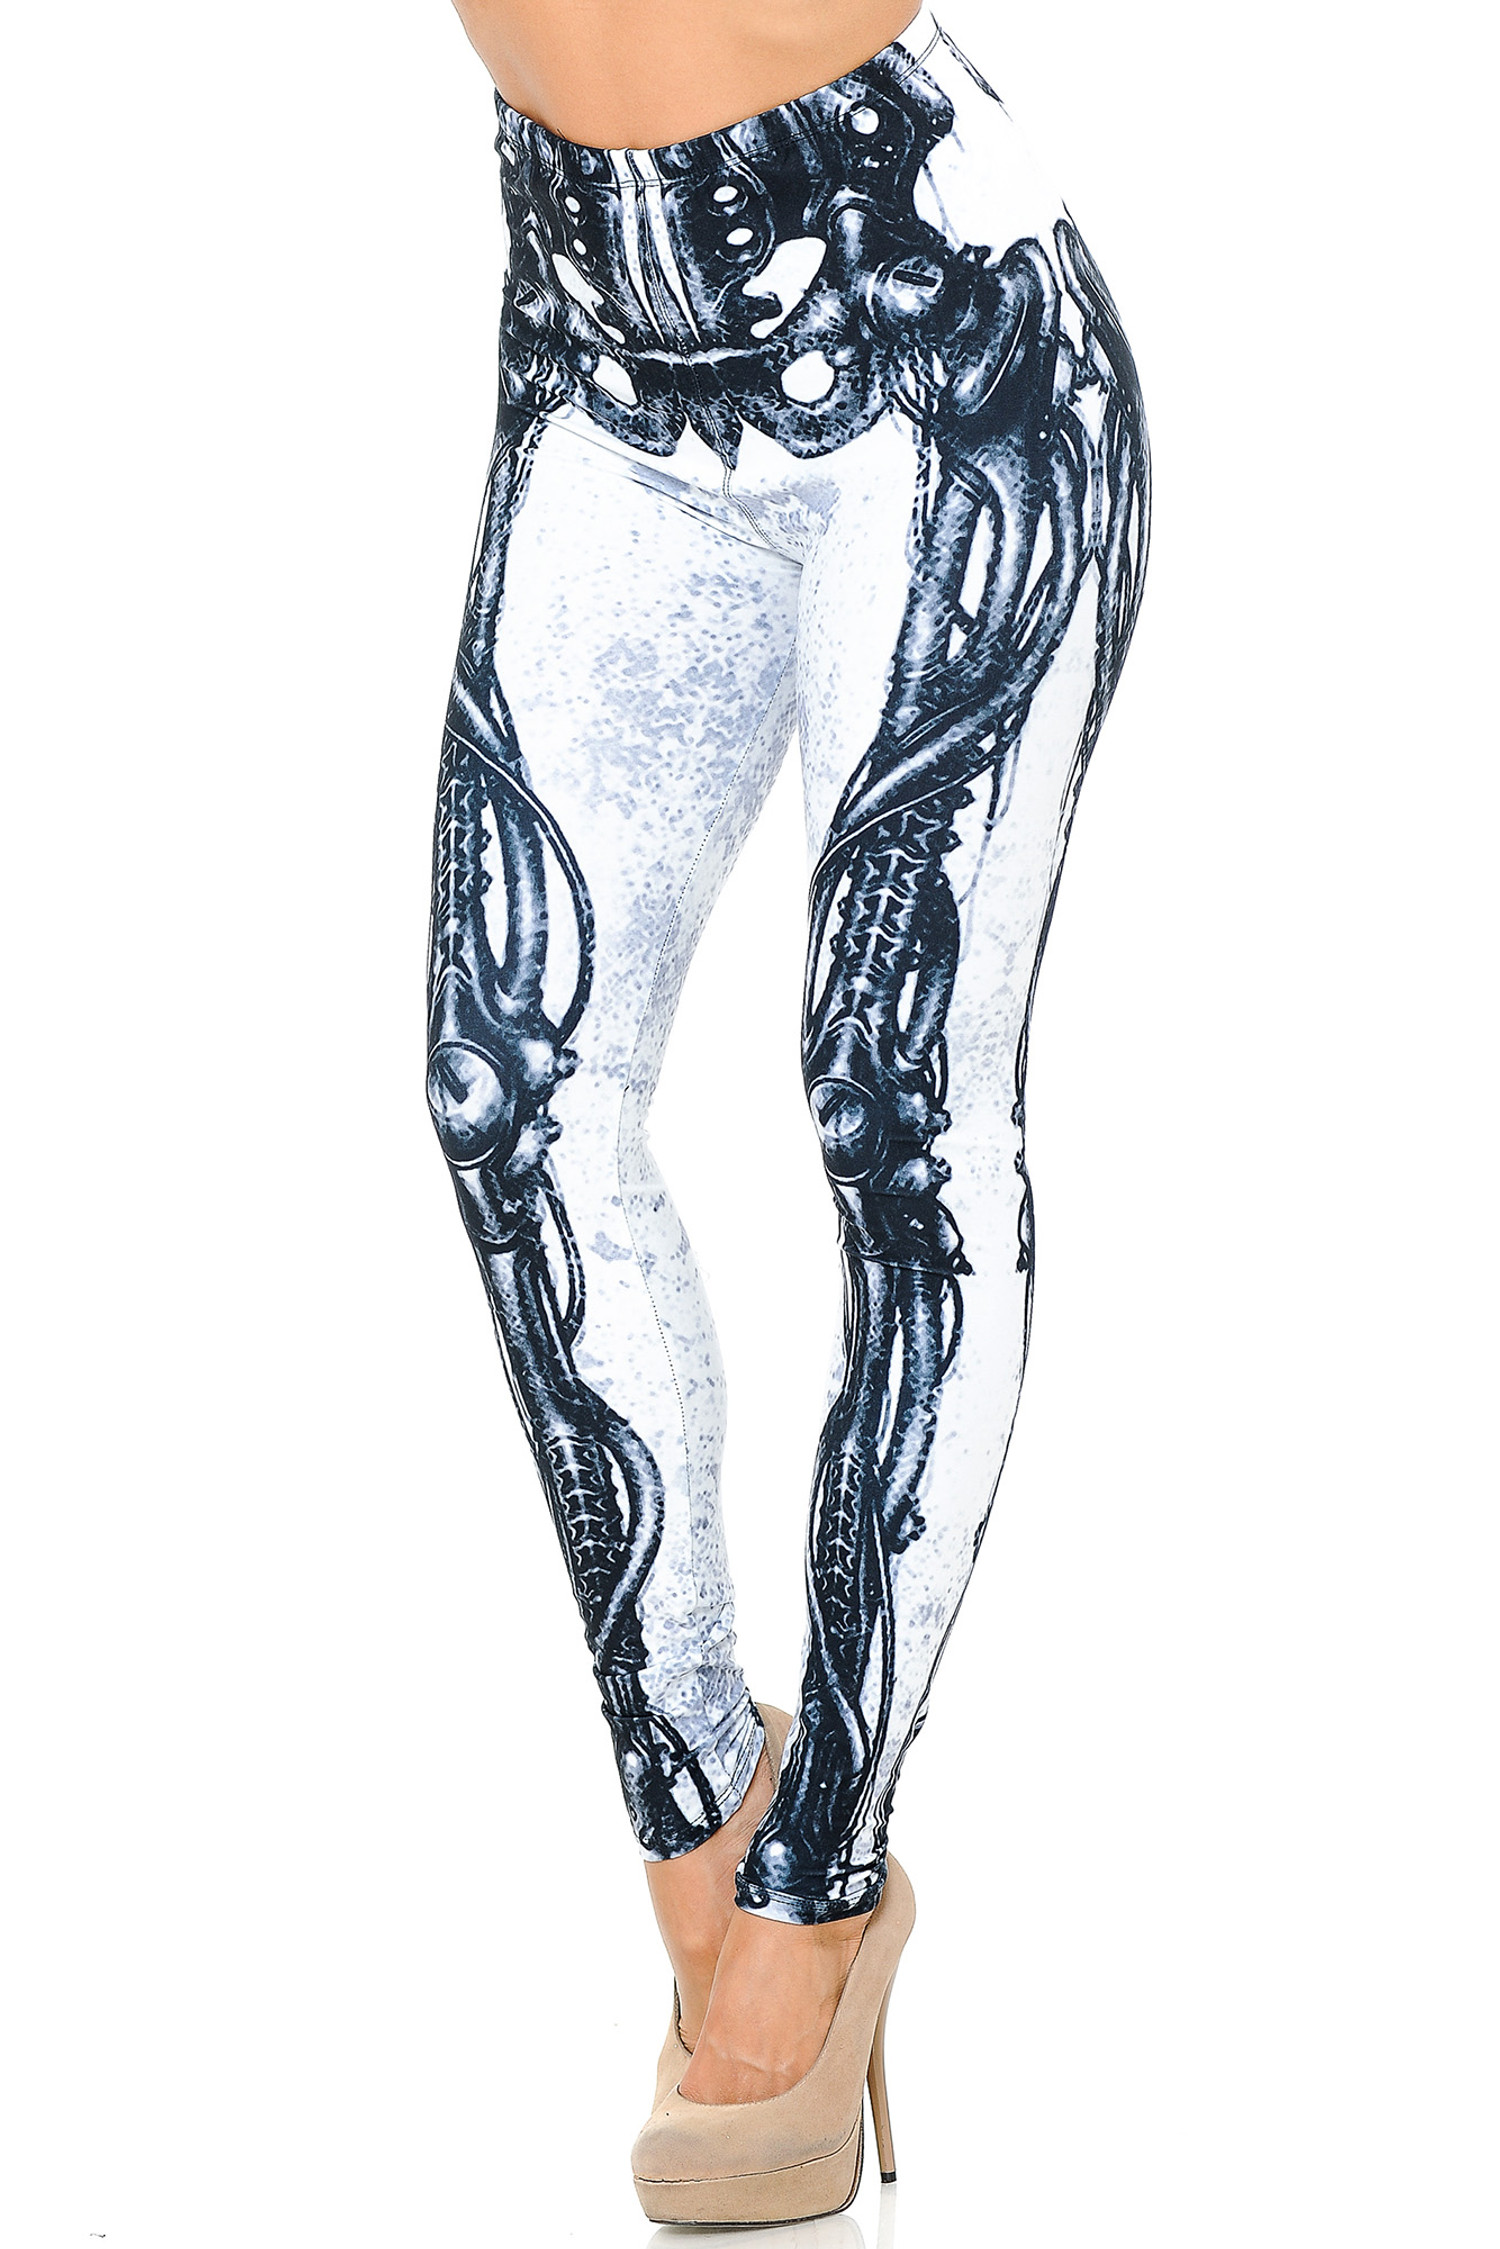 Creamy Soft White Bio Mechanical Skeleton Leggings (Steam Punk) - USA Fashion™